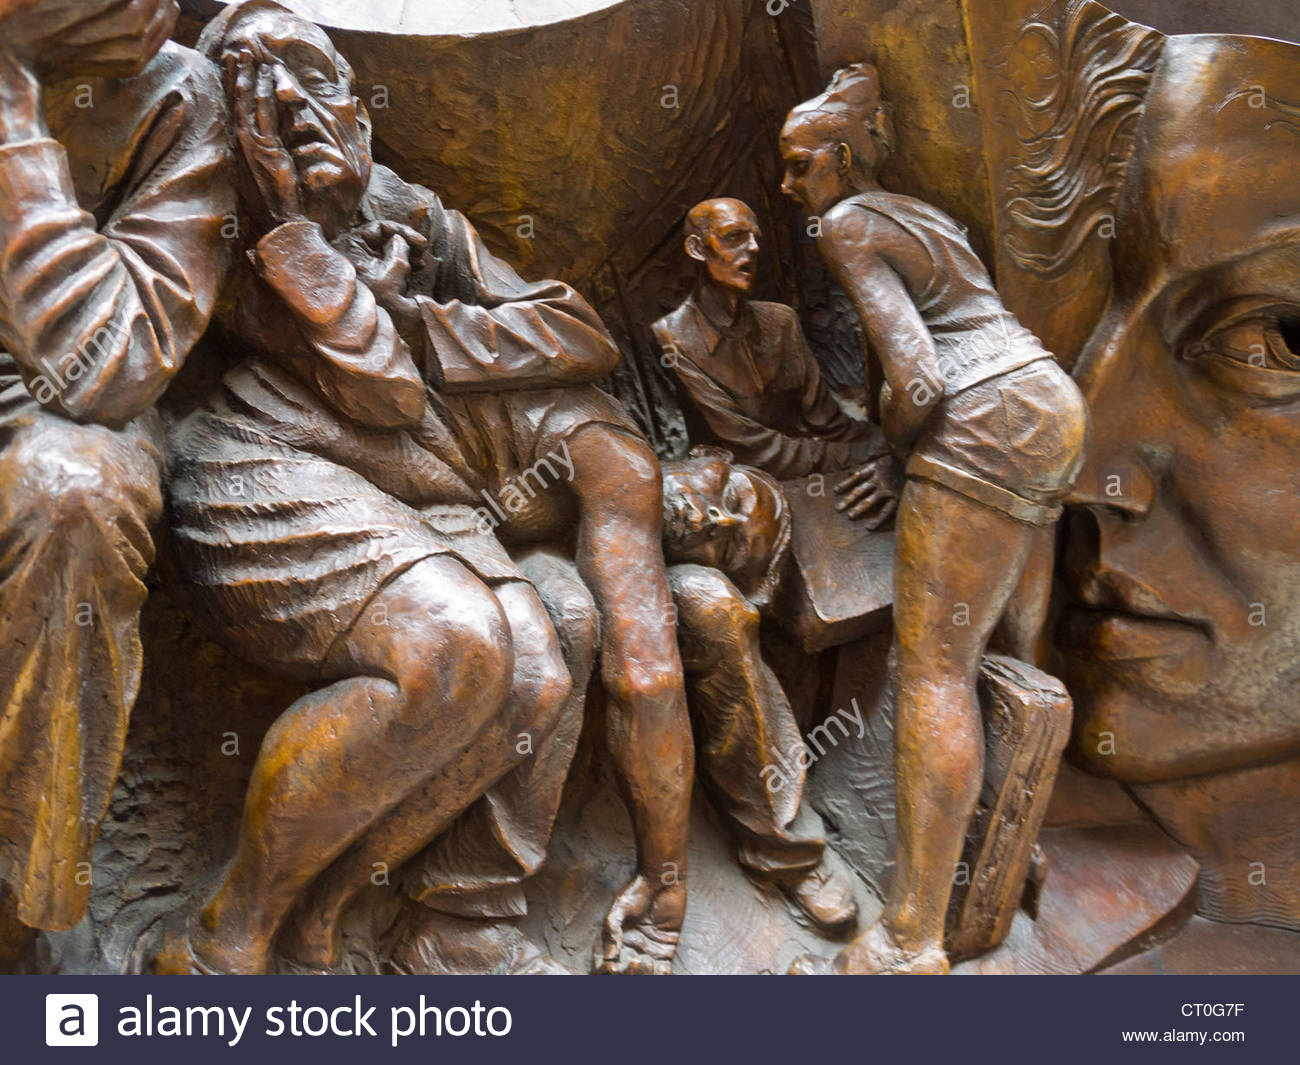 Tired Travellers Part of sculptured frieze of figures by Paul Day St Pancras Station London England Stock Photo